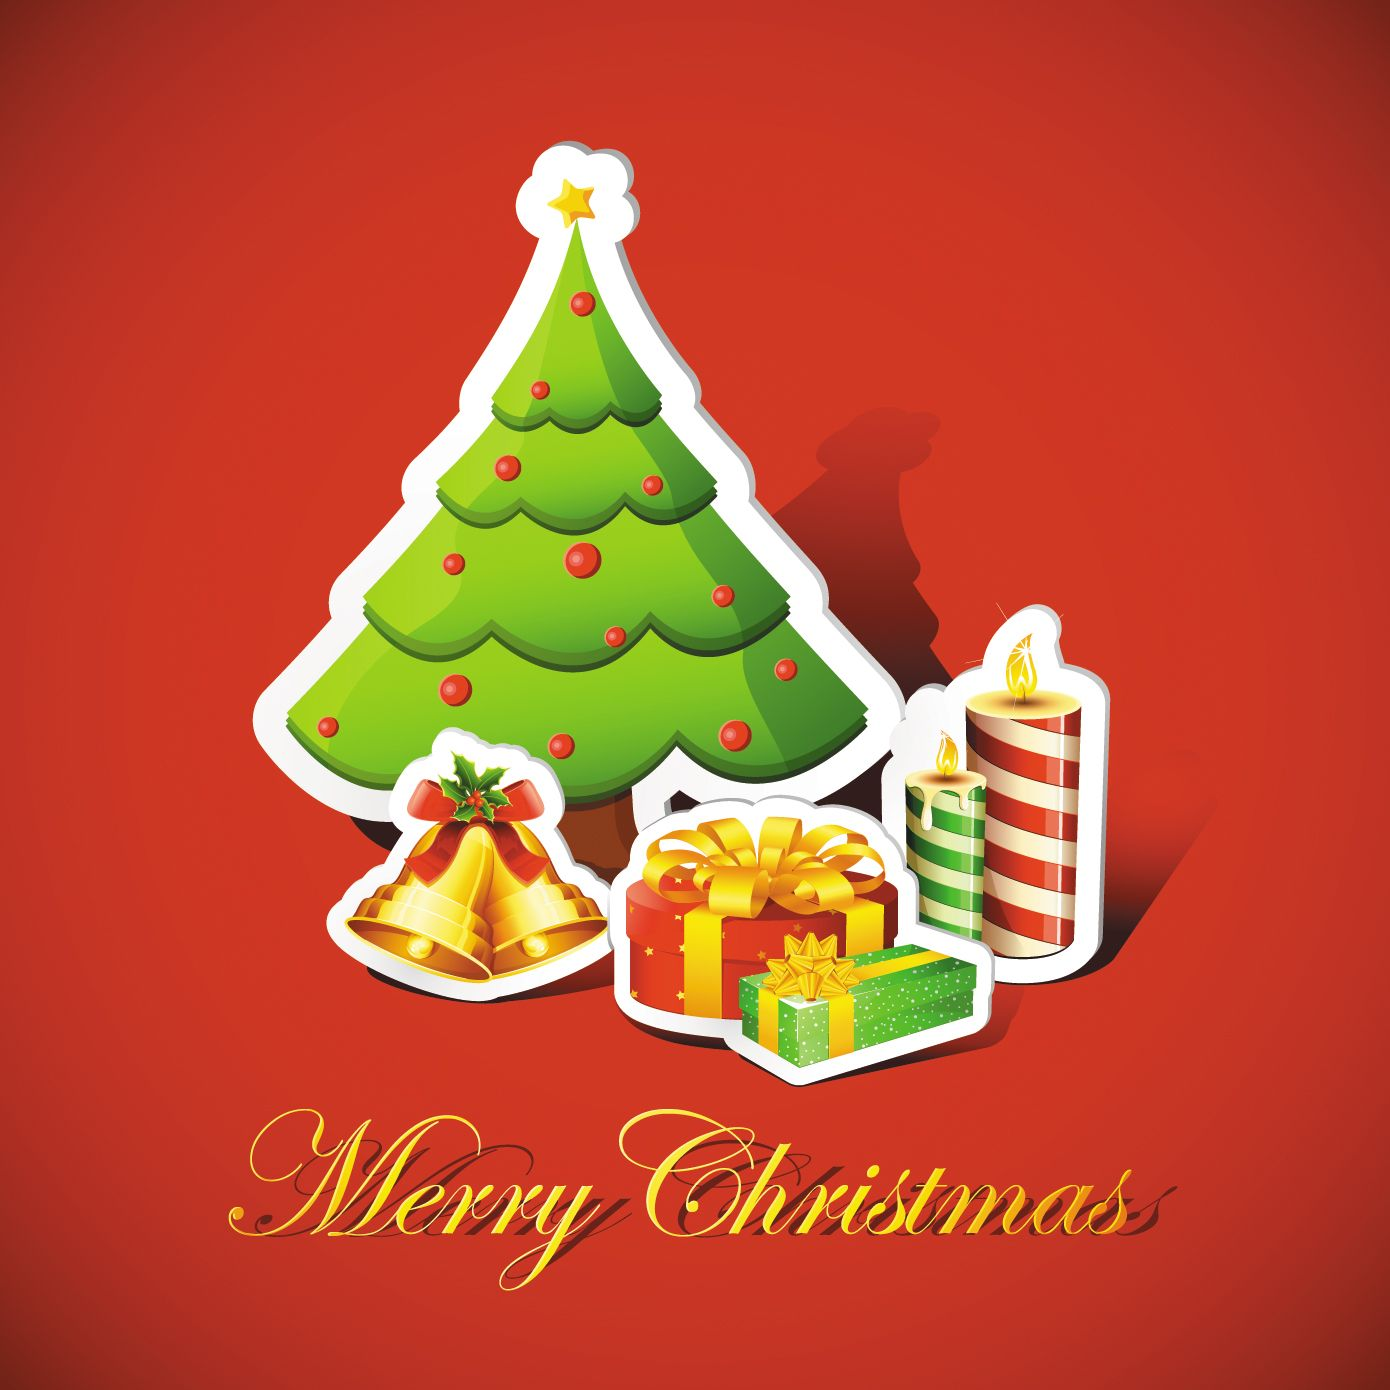 Free Vector Beautiful Christmas Background Graphic Available For Download At 4vector Check